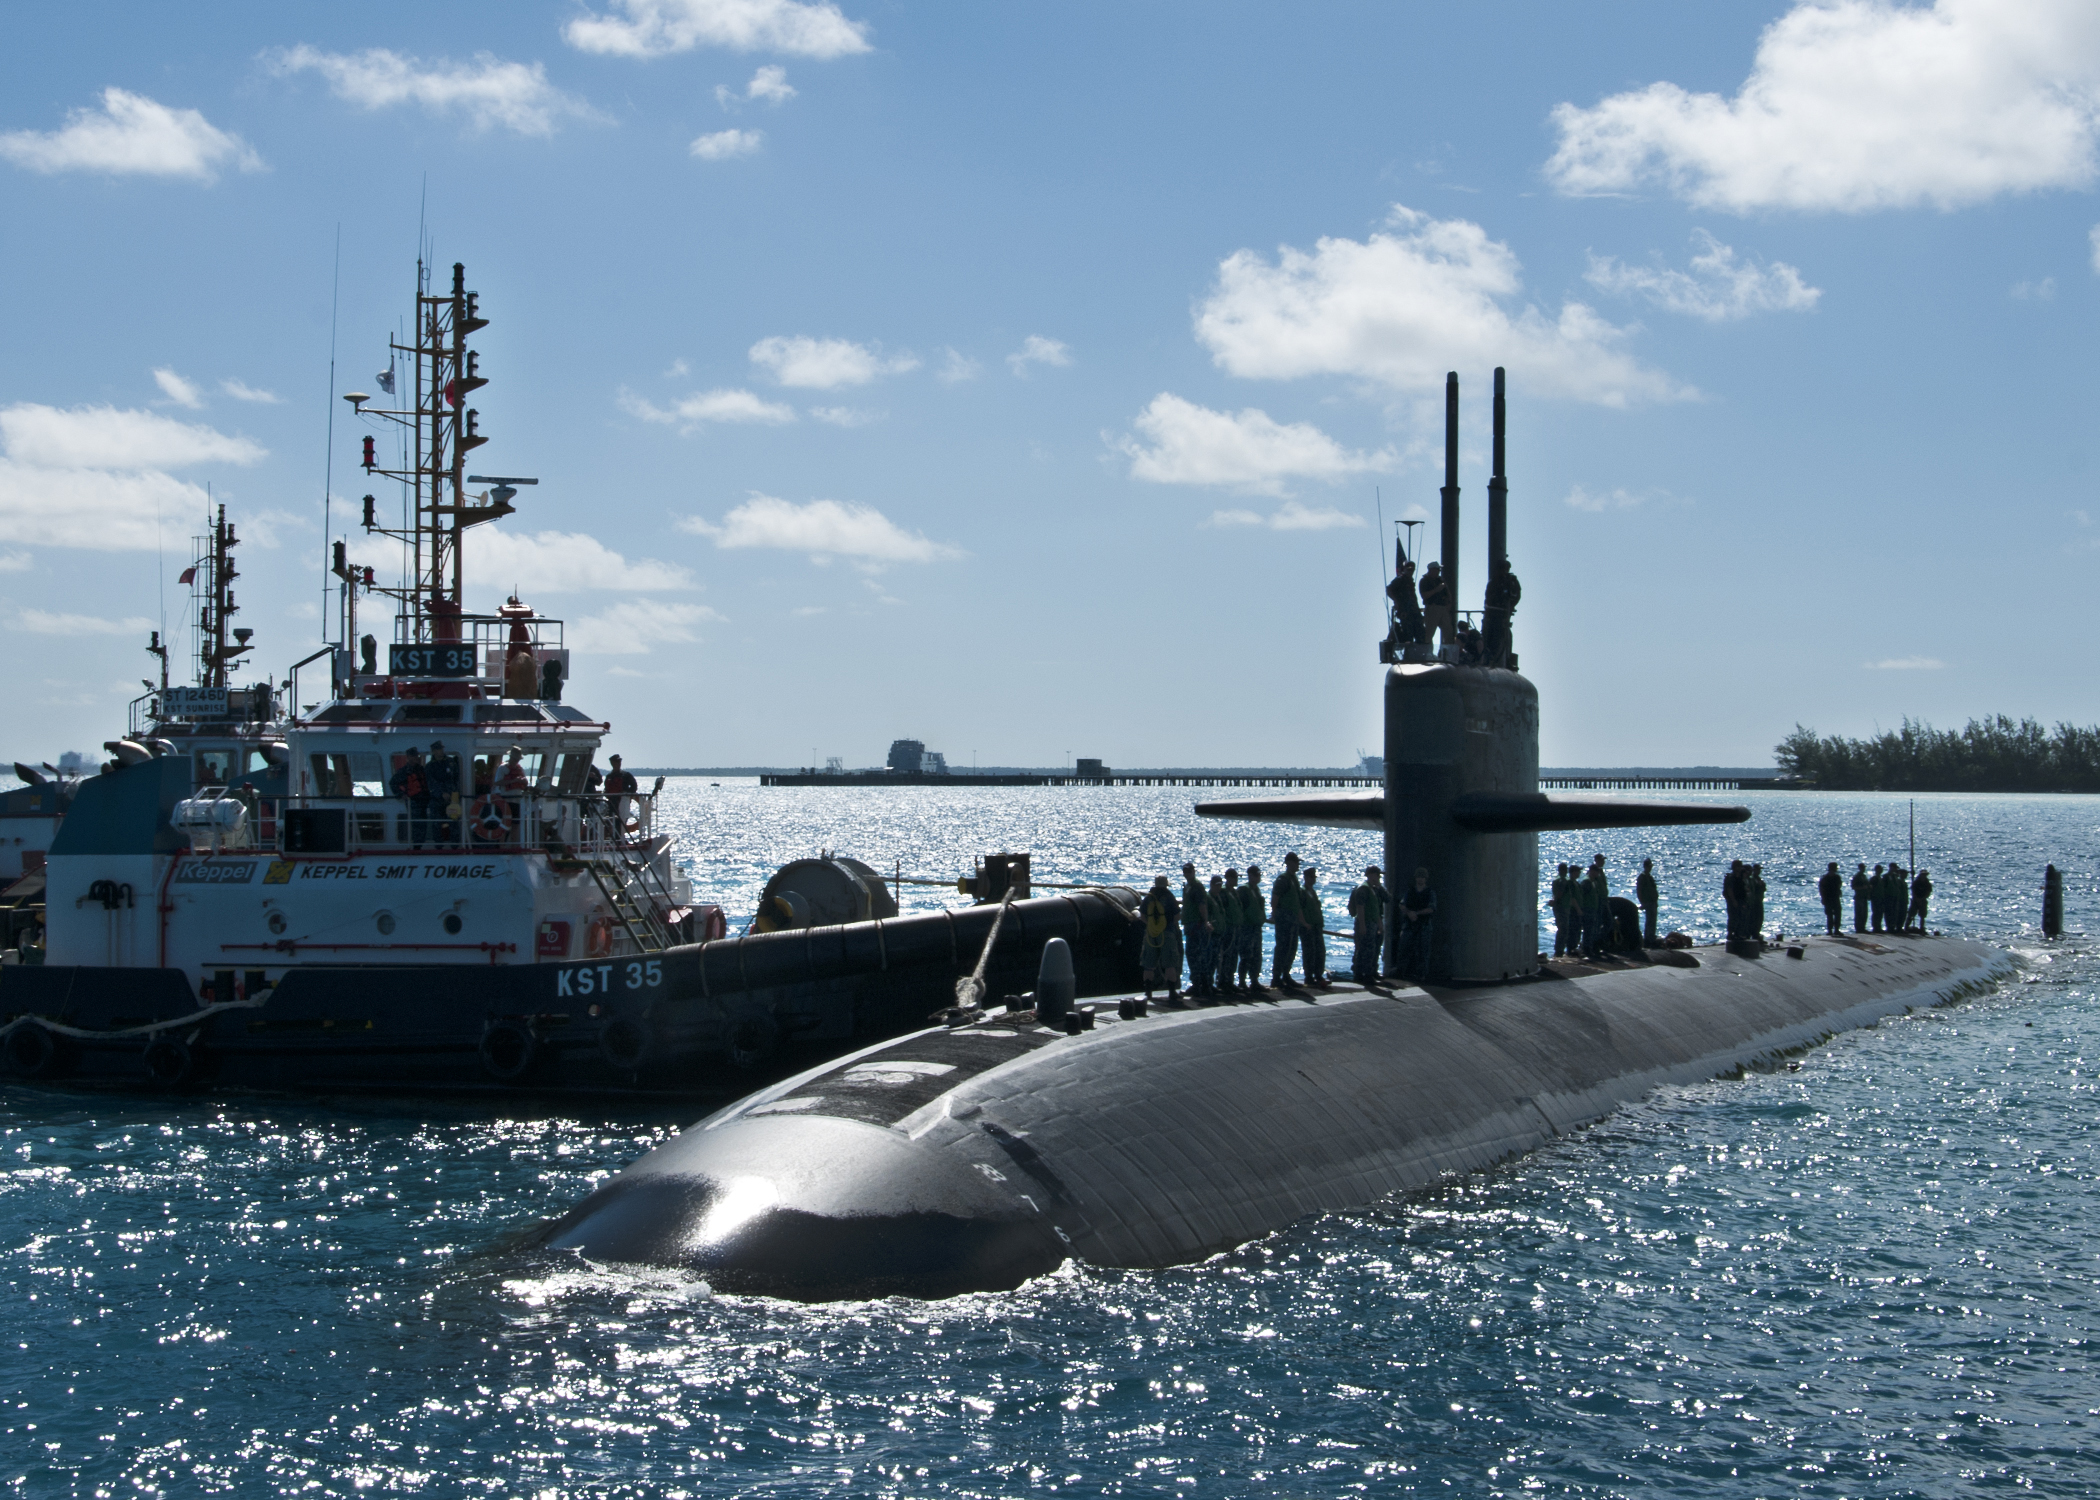 USS DALLAS SSN-700 am 06.10.2013 in Diego GarciaBild: U.S. Navy